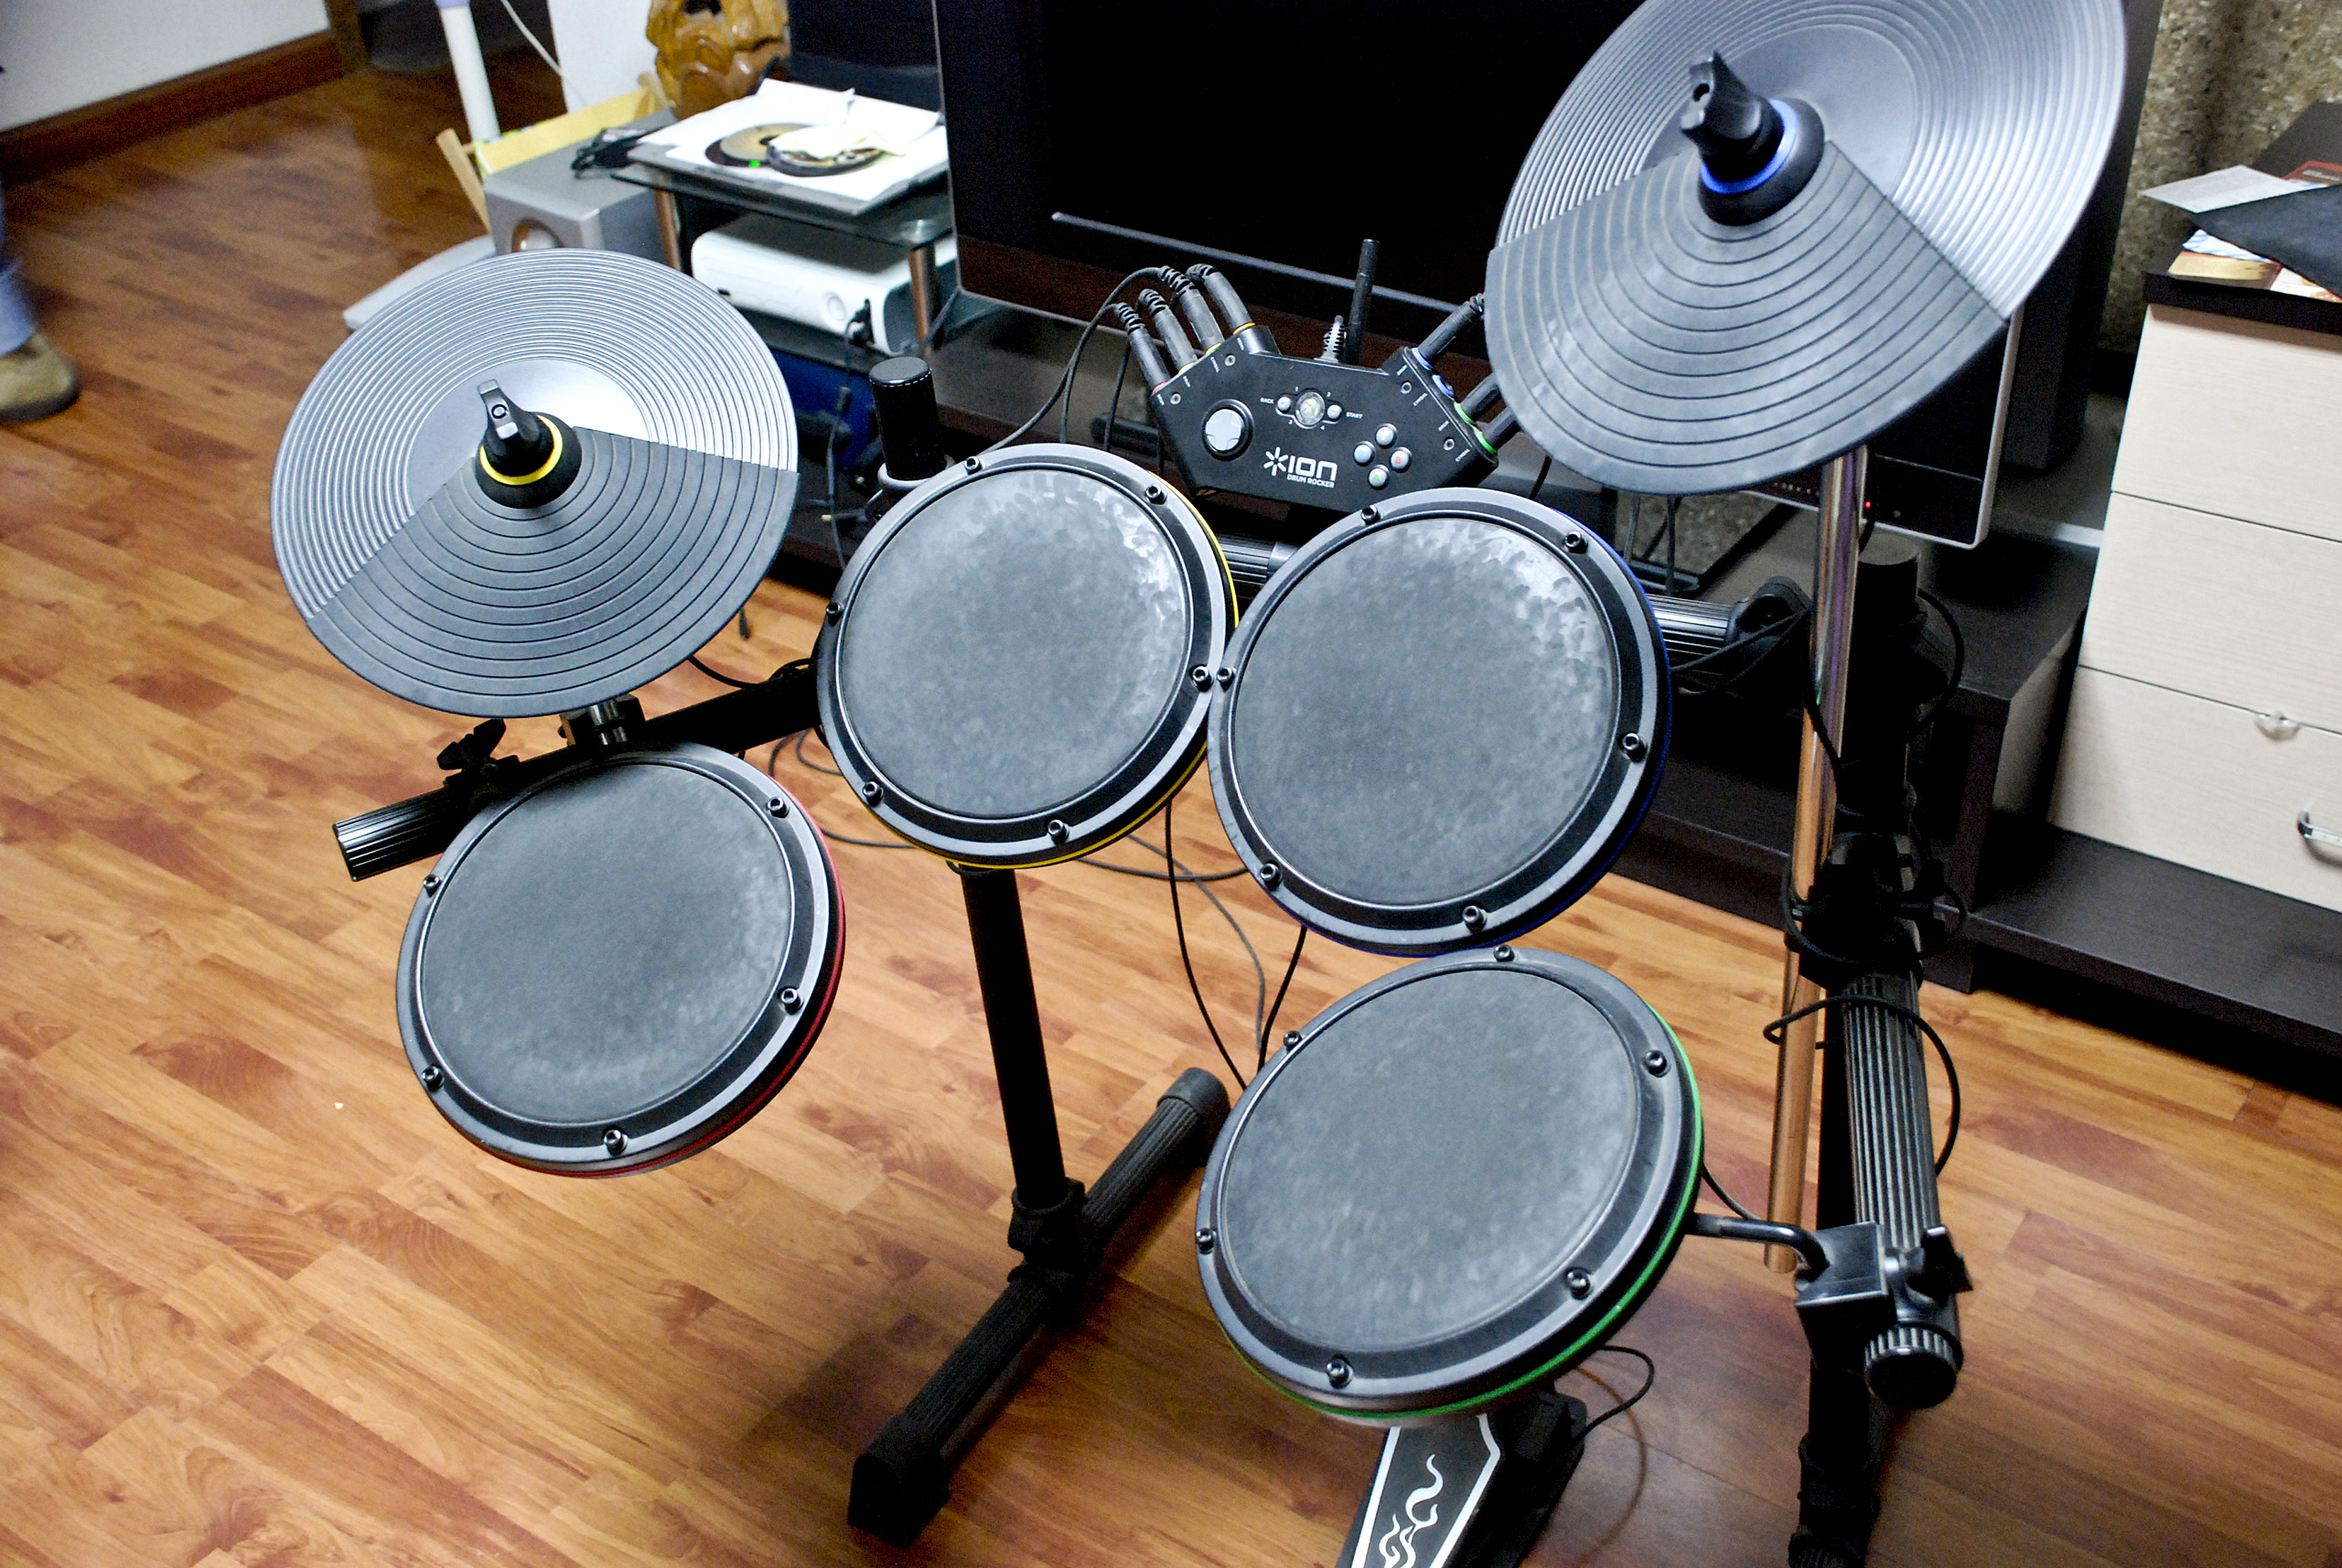 Yamaha Electronic Cymbals furthermore Alesis Dm10 Wiring Diagram besides Is There A Standard Or Typical Drum Kit Layout also Electronic Drum Wiring Diagram as well 1021. on diagram of electronic cymbal